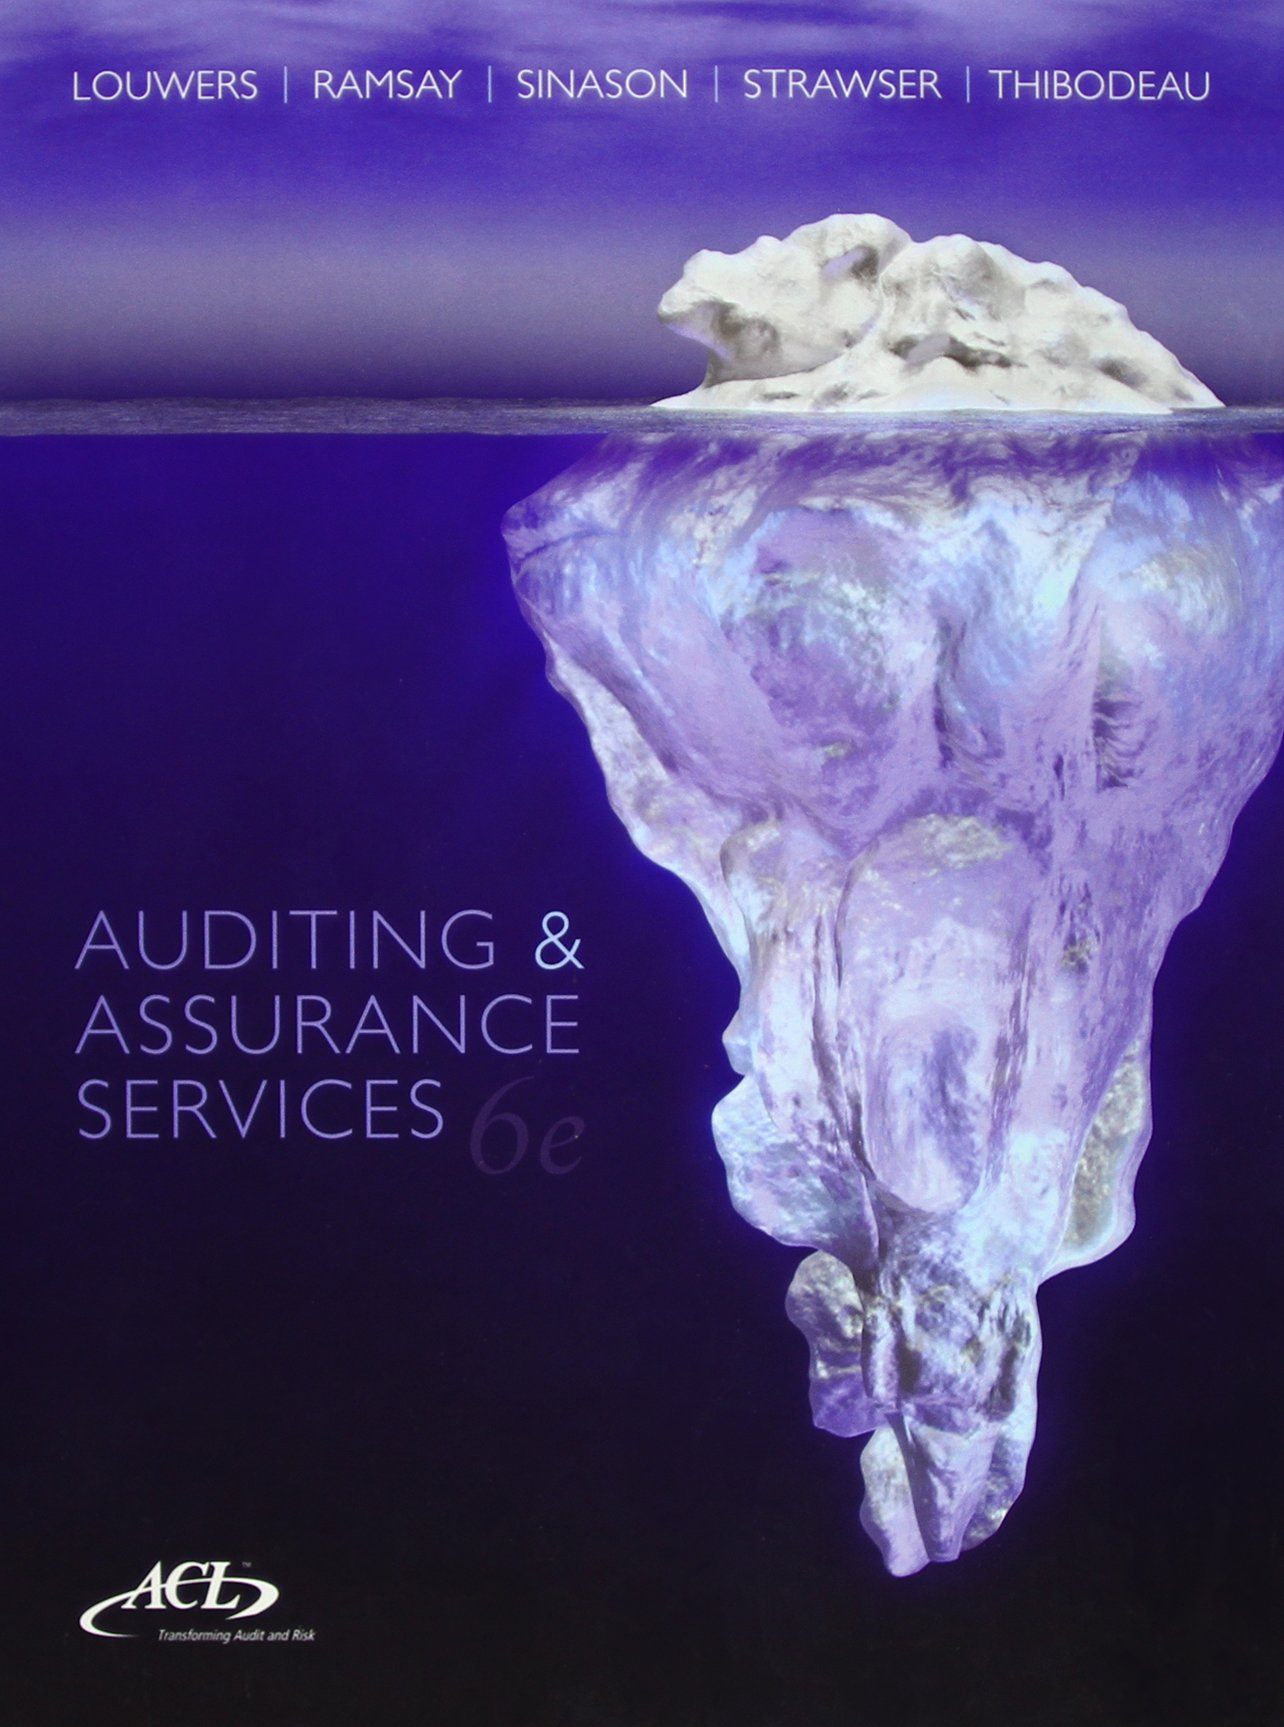 Auditing and assurance services timothy j louwers robert j auditing and assurance services timothy j louwers robert j ramsay david sinason jerry r strawser jay c thibodeau 9781259095665 amazon books fandeluxe Gallery